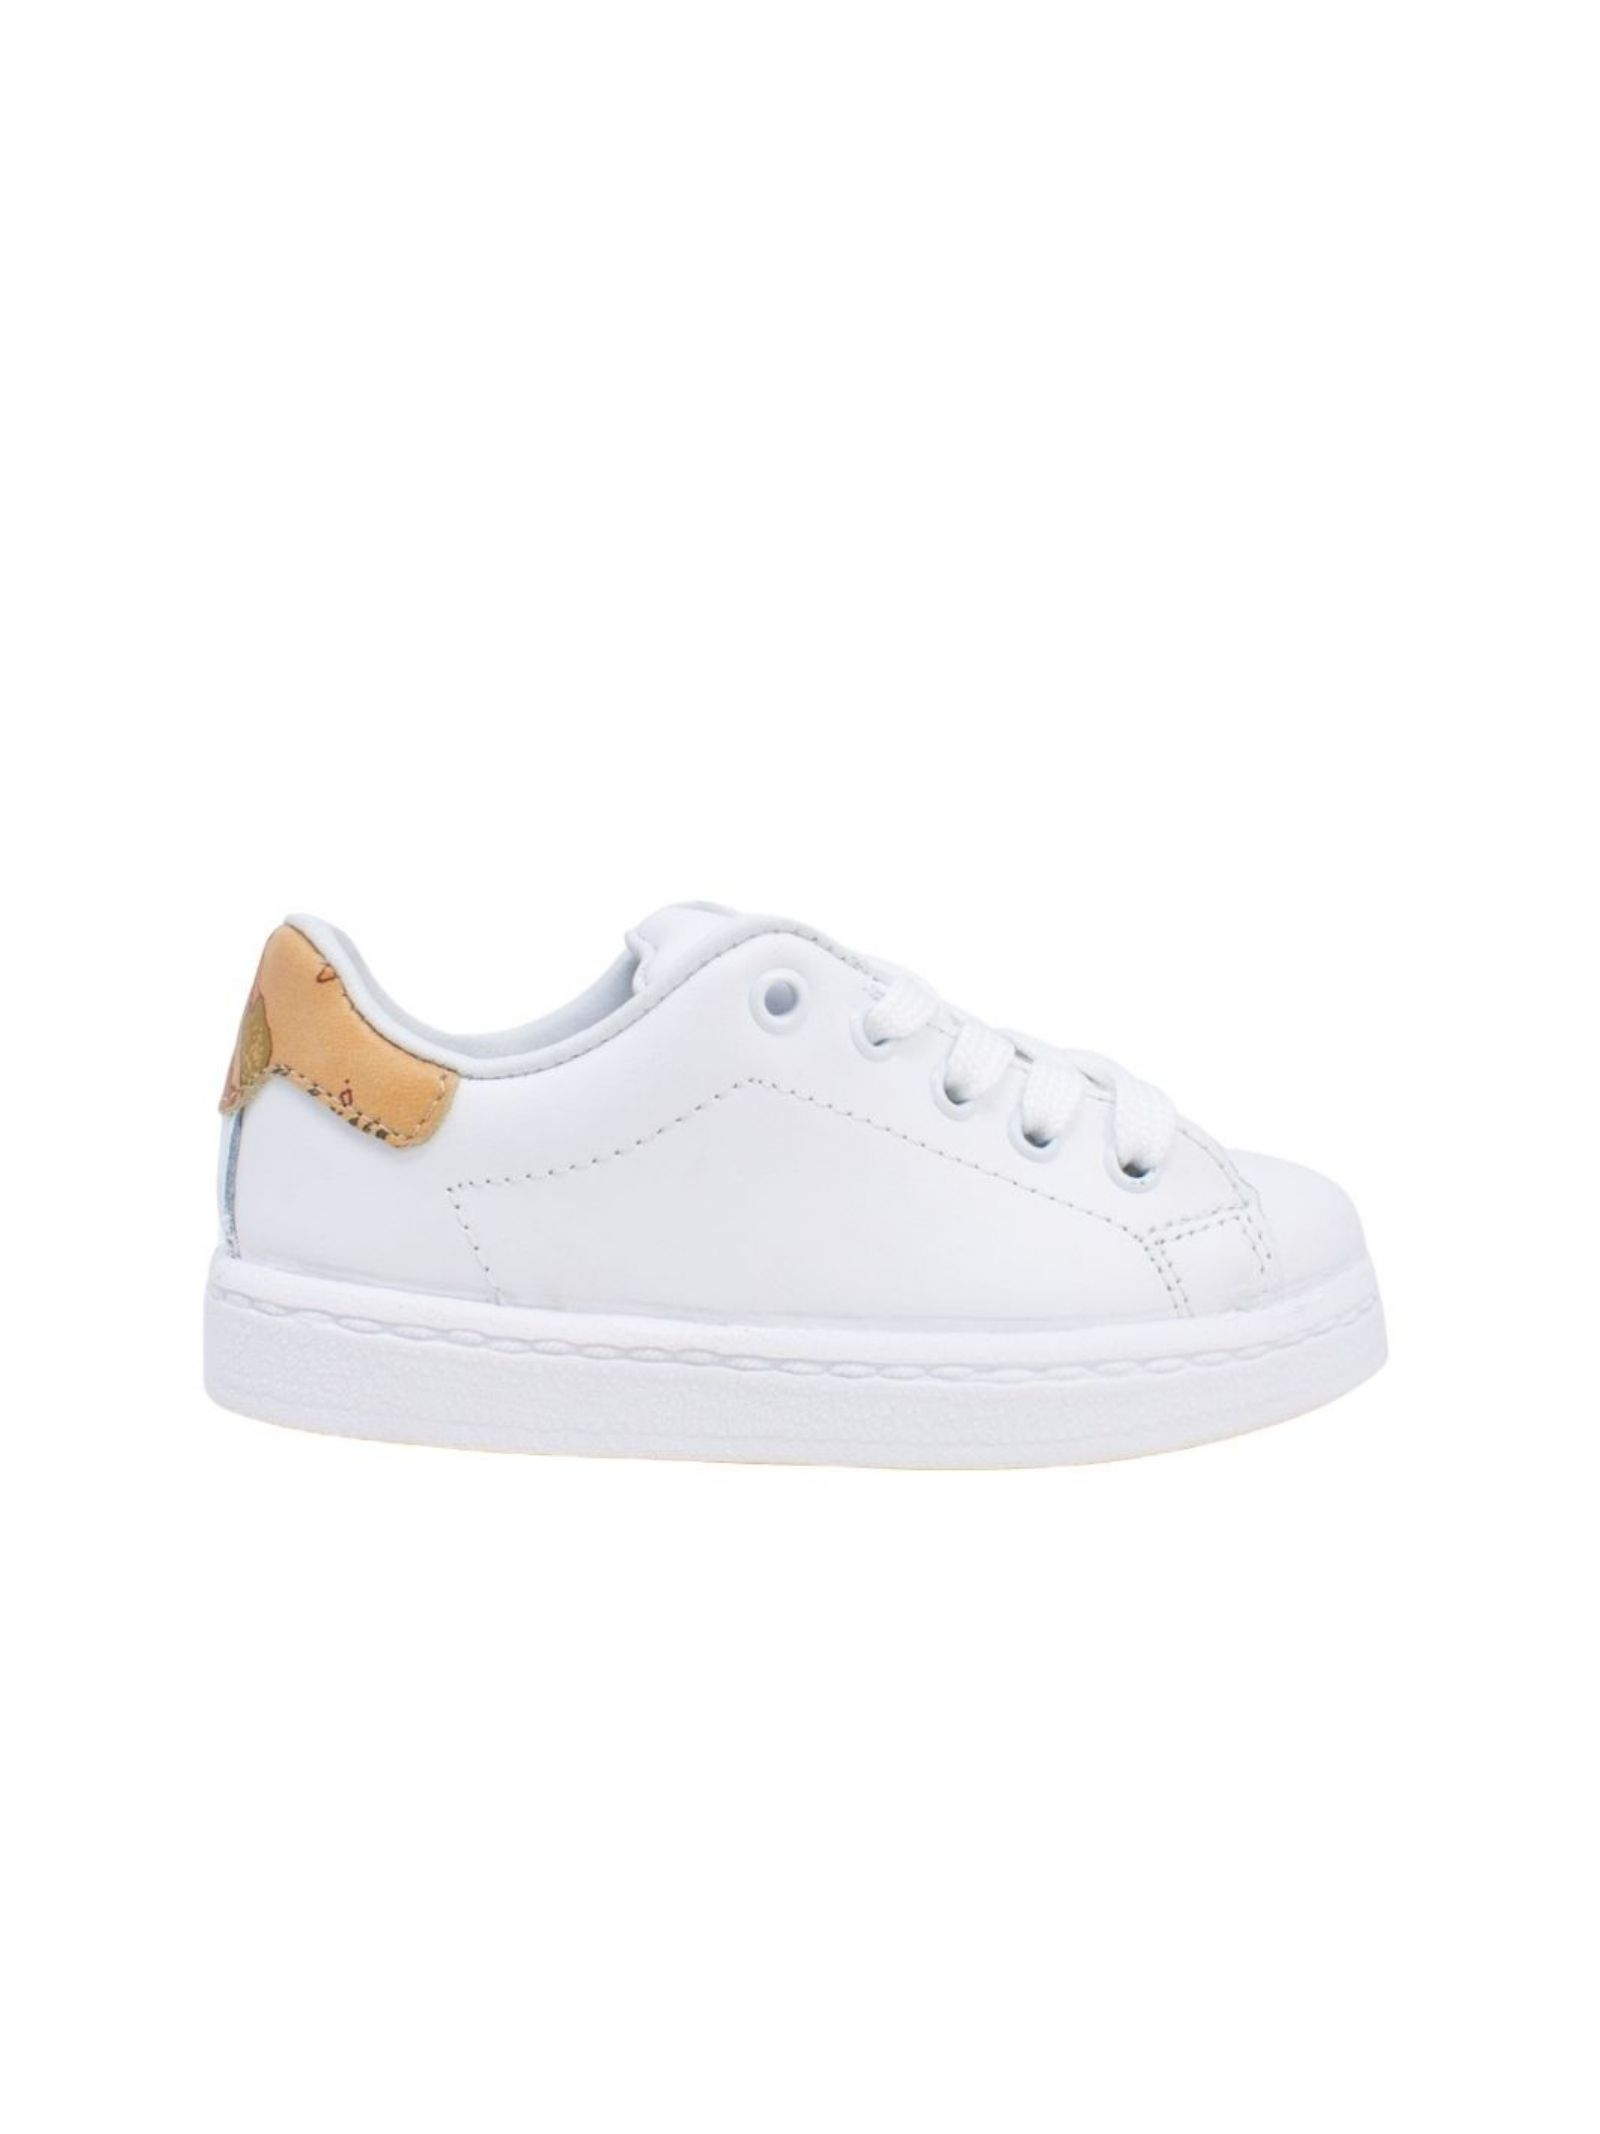 Sneakers Junior Leather ALVIERO MARTINI 1° CLASSE JUNIOR | Sneakers | P1910900